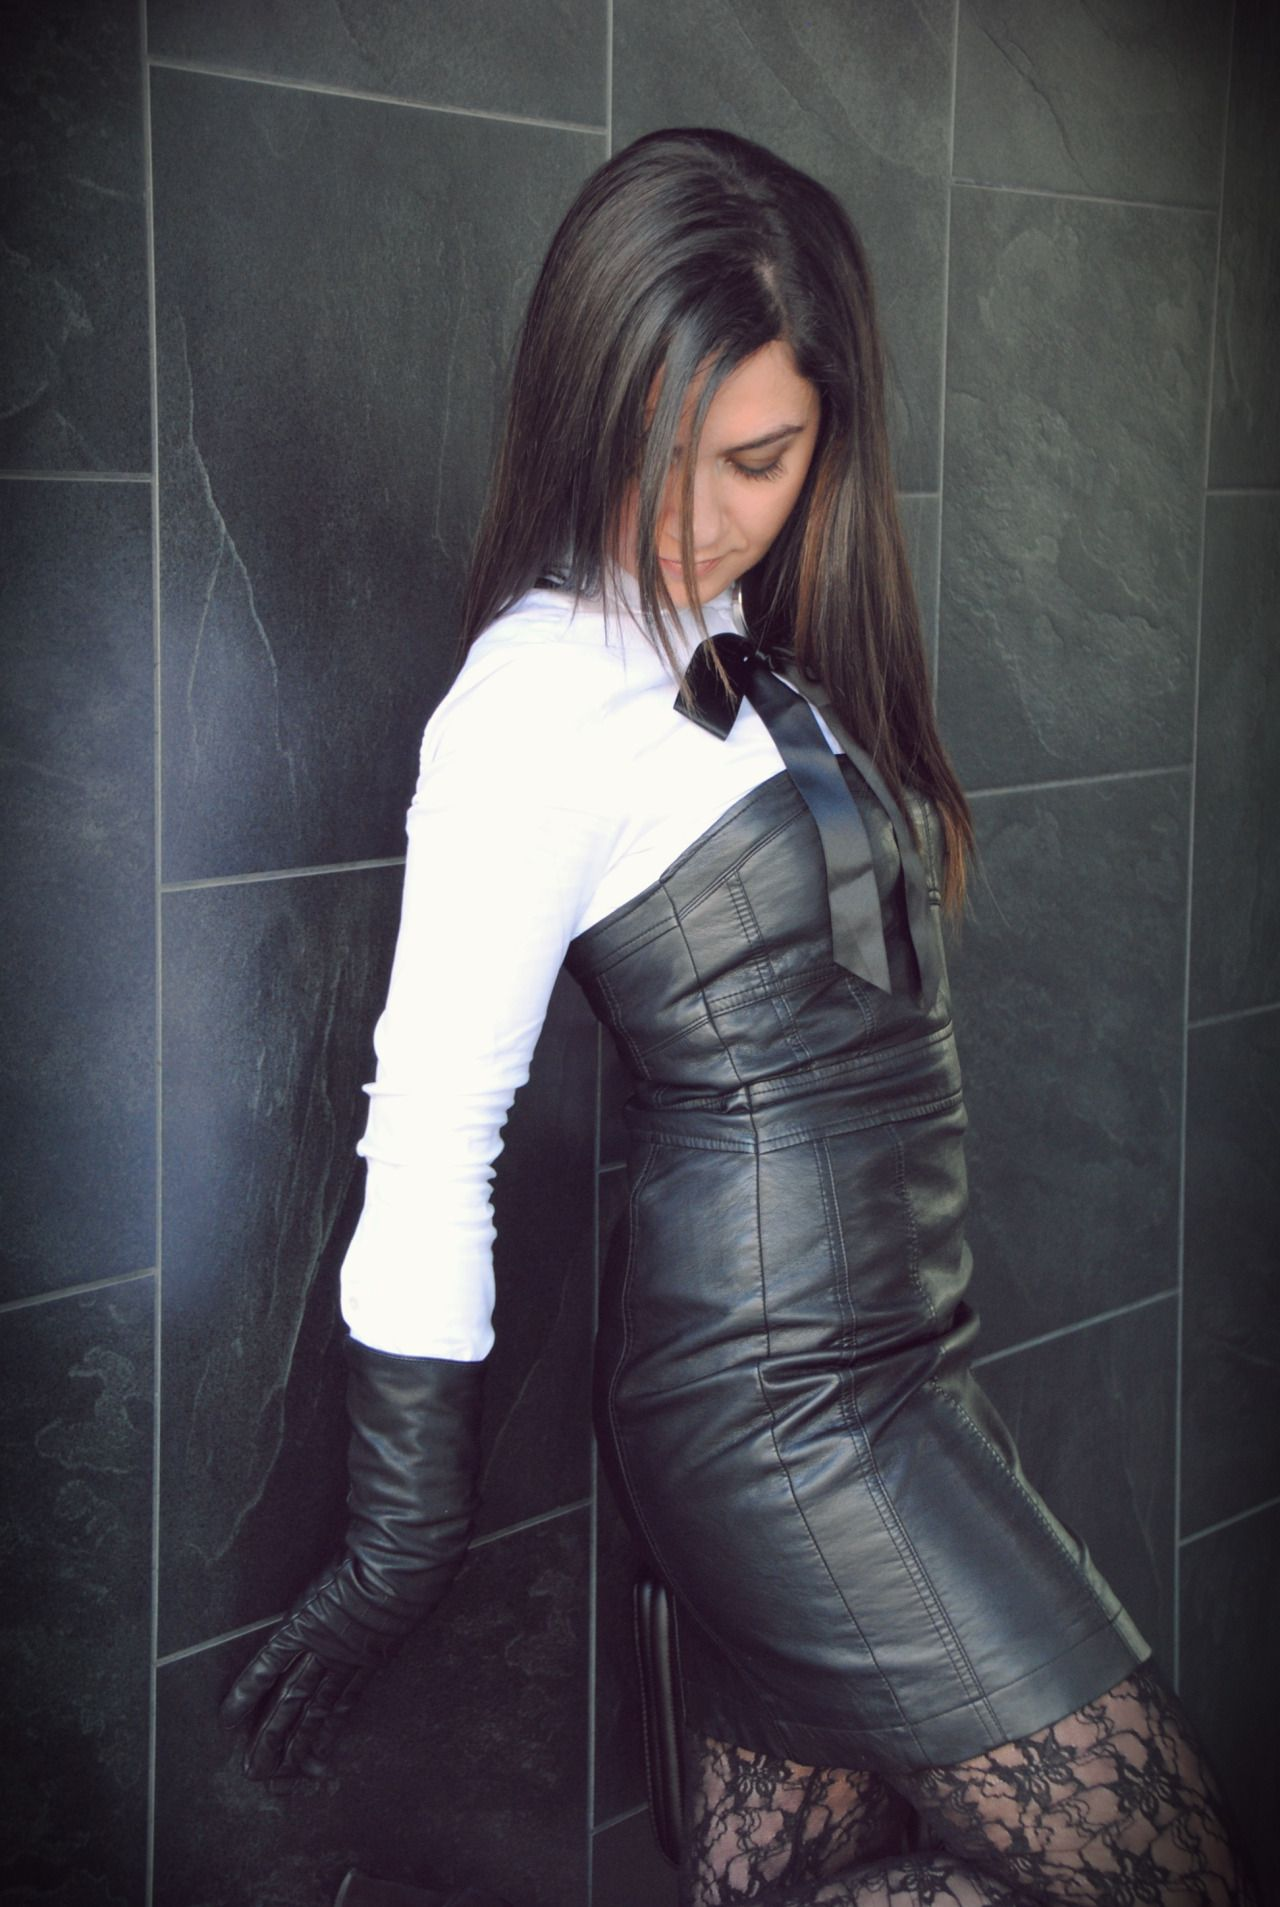 Leather Dress And Gloves Leather Gloves Outfit Leather Gloves Women Leather Dresses [ 1907 x 1280 Pixel ]